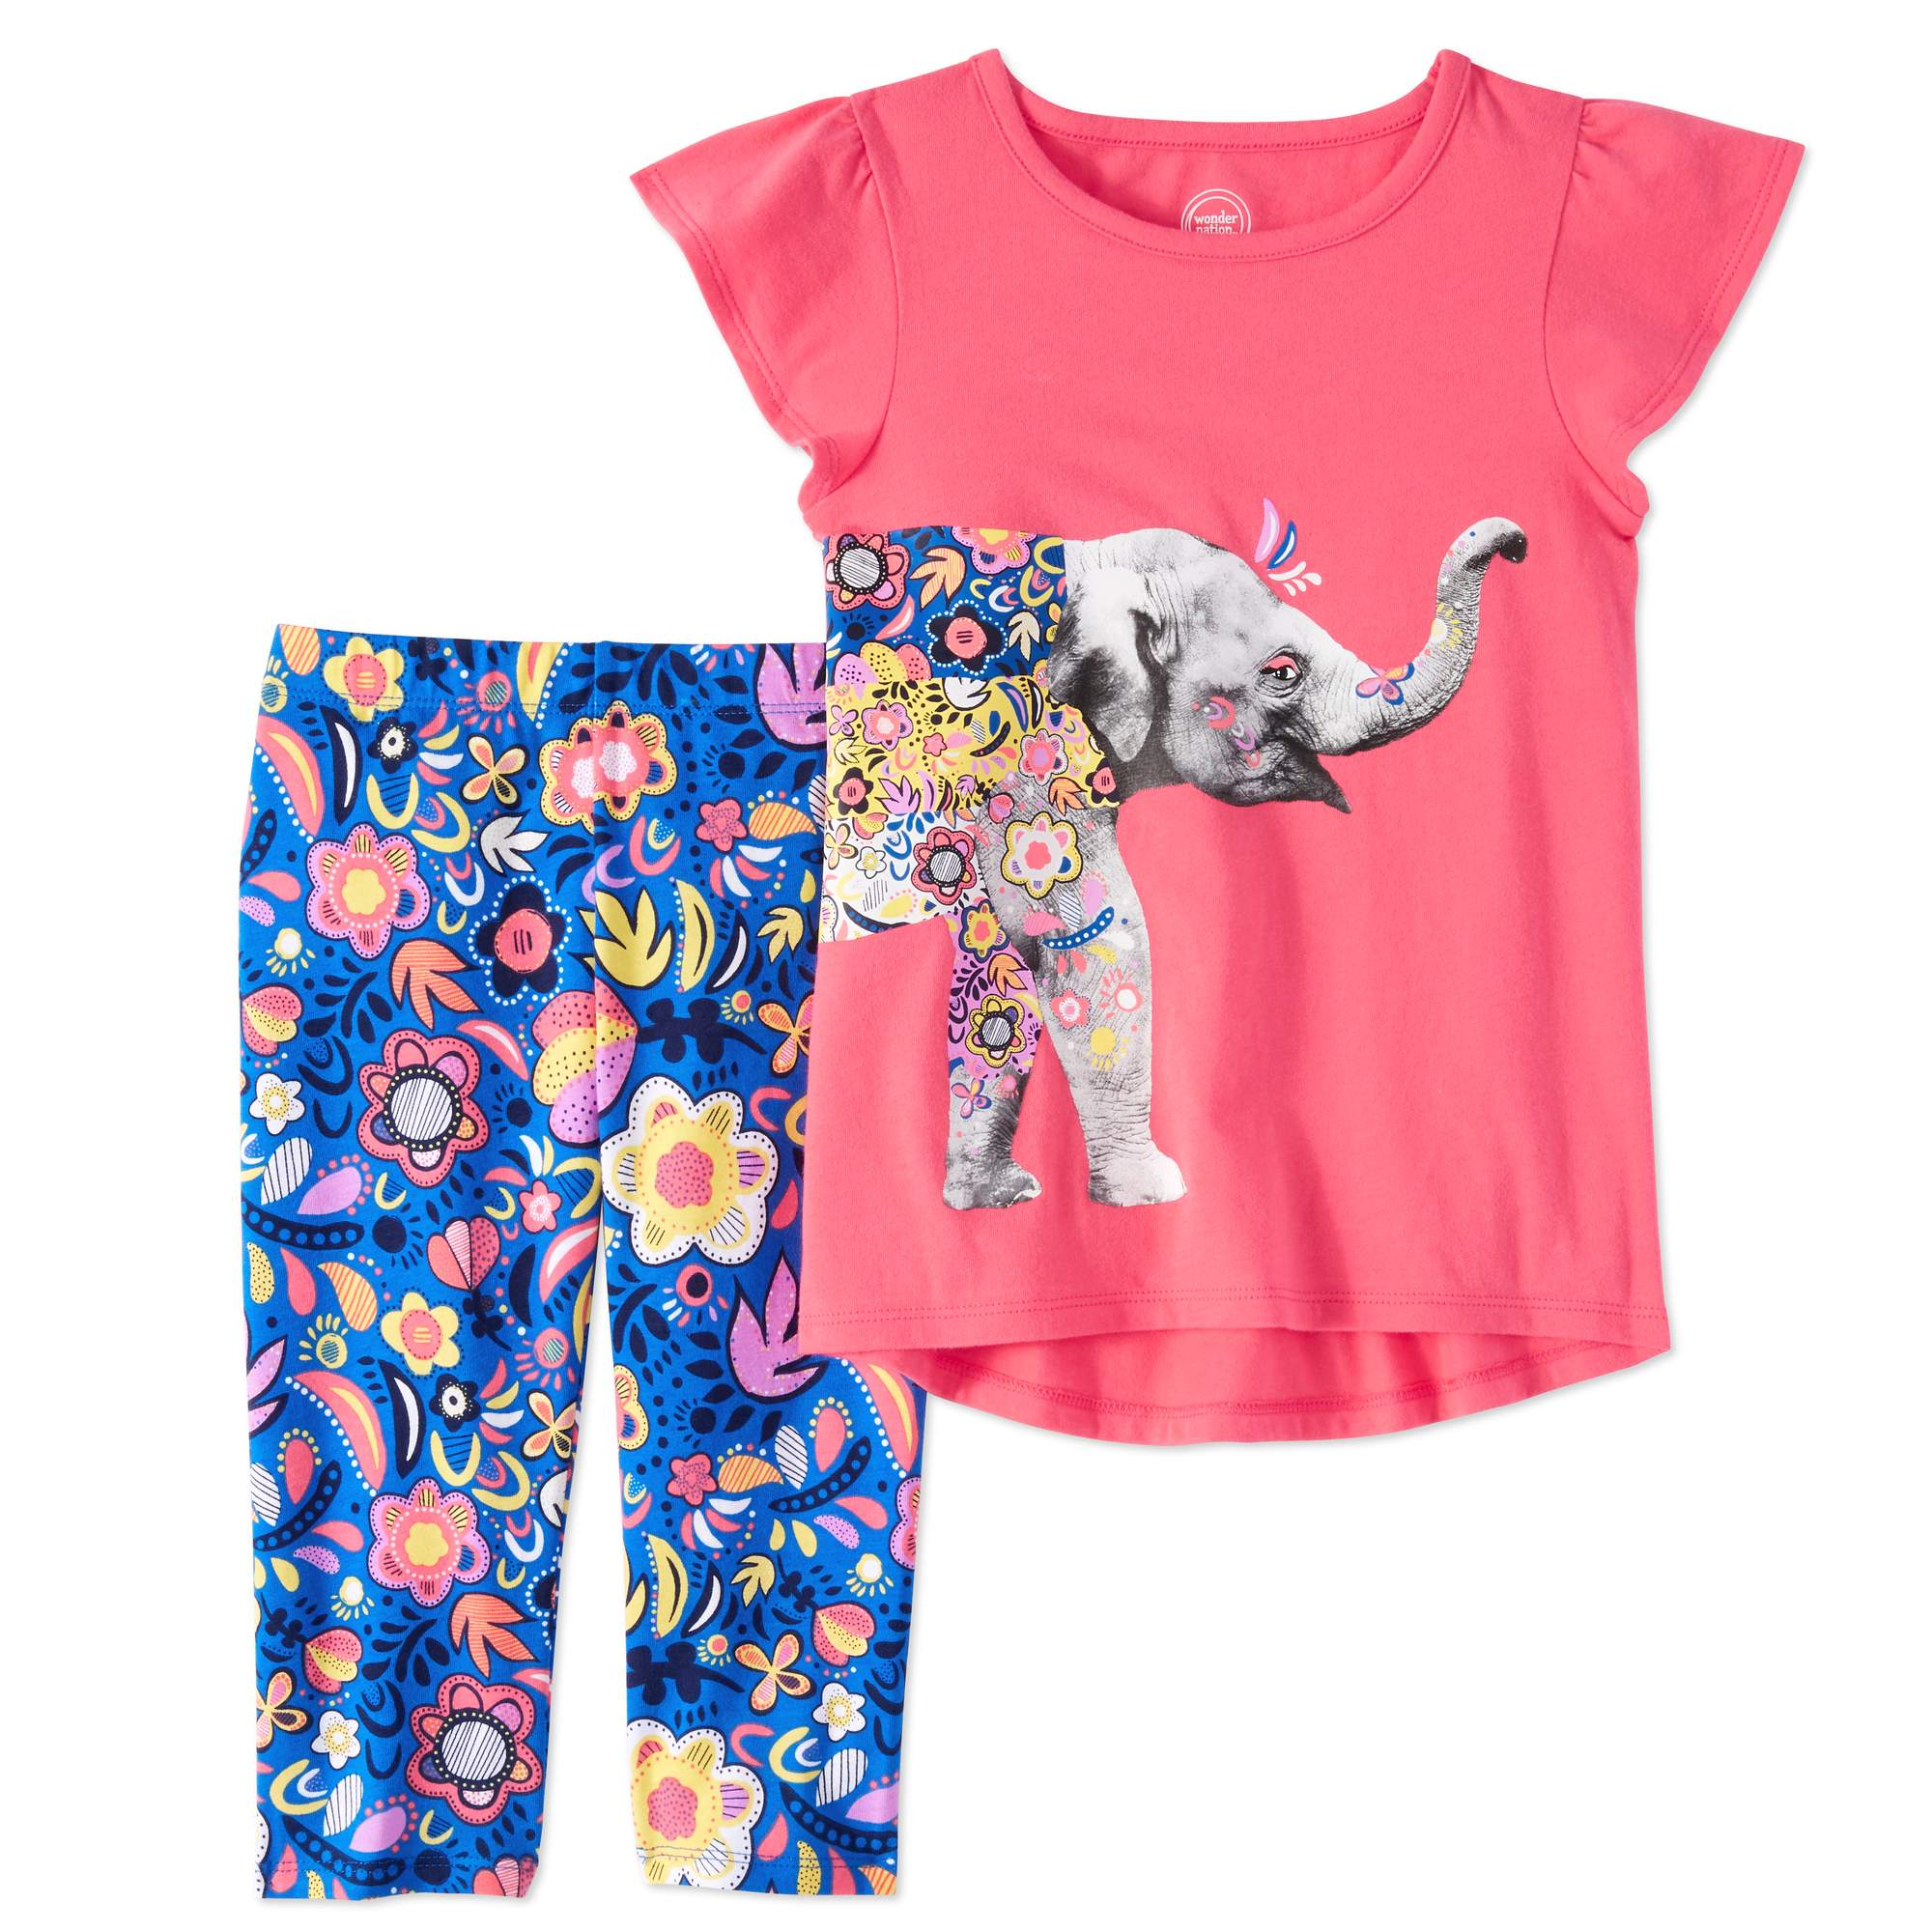 Clearance Girls Clothing Under 5